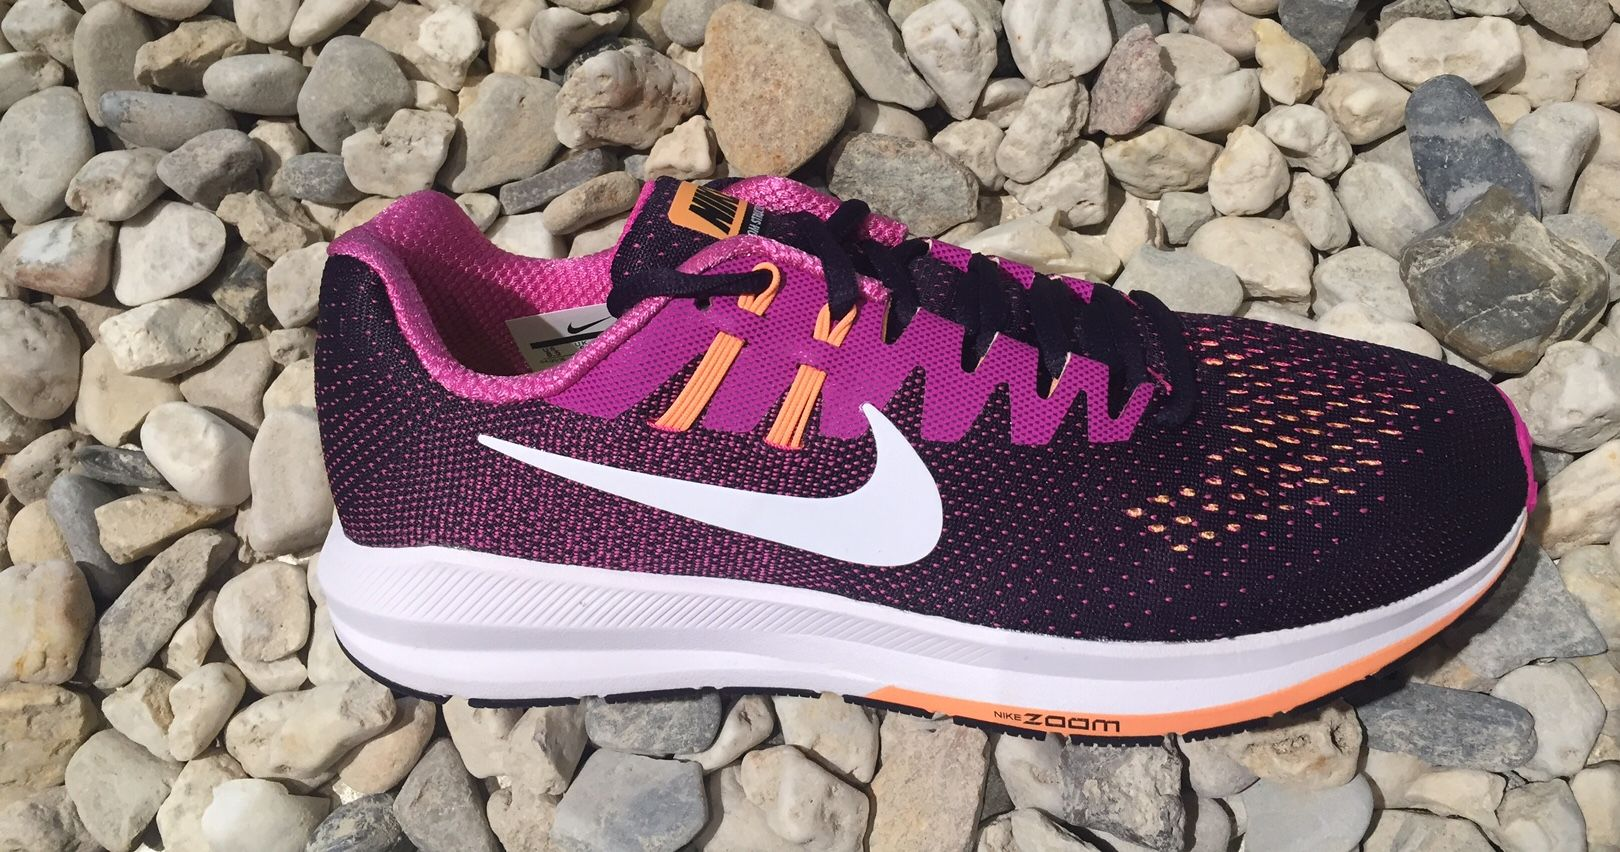 Nike Lady Air Zoom Structure 20 in Berry